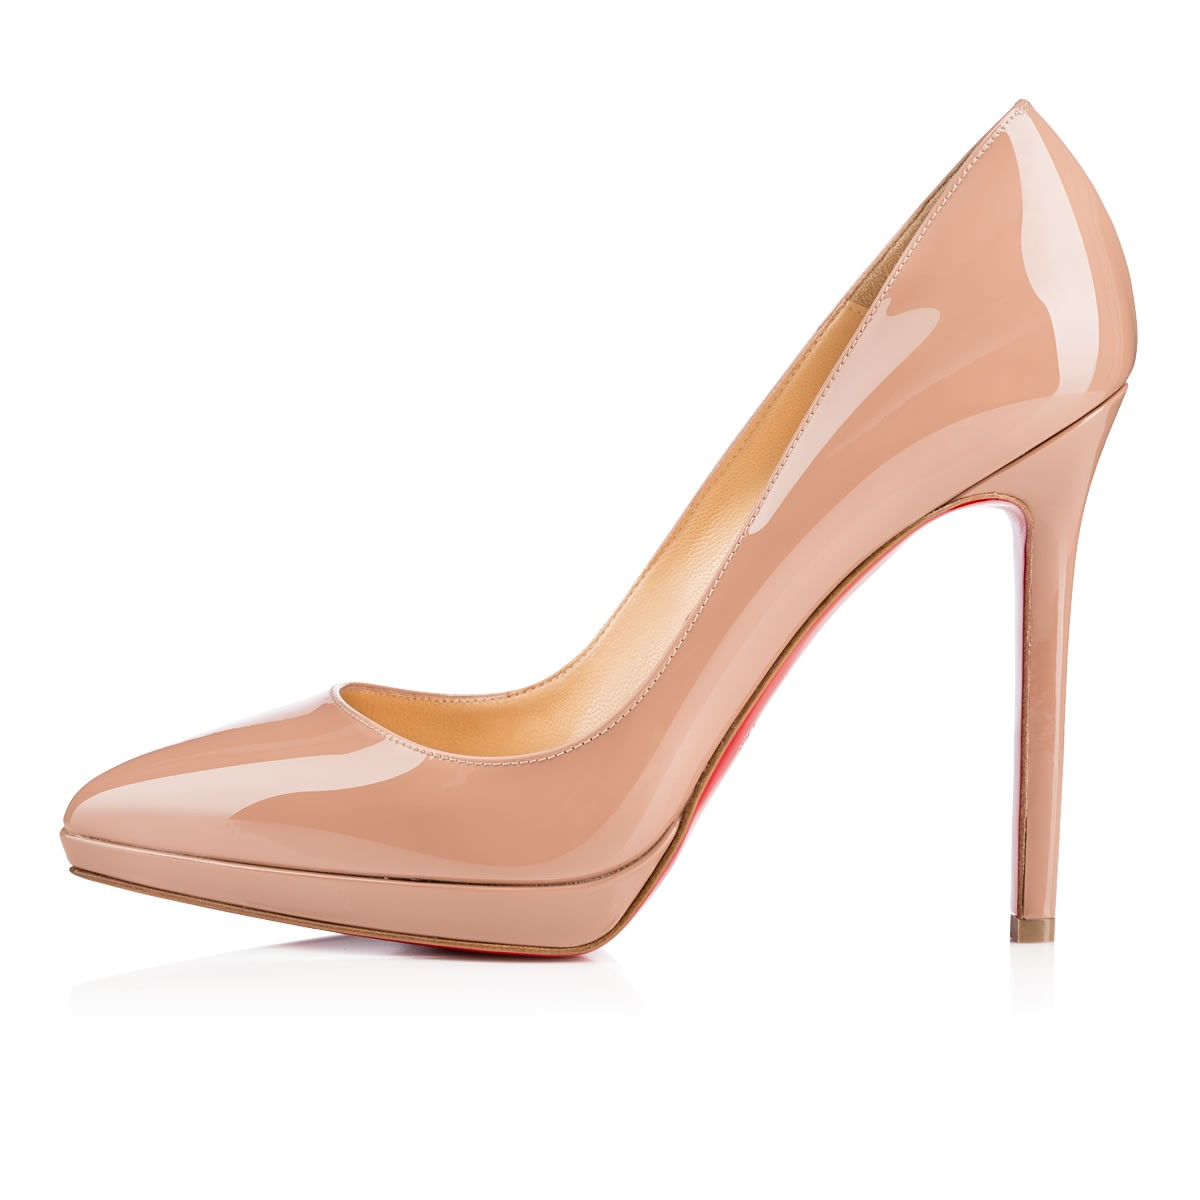 bd14f708d35e CHRISTIAN LOUBOUTIN PIGALLE PLATO 120MM NUDE PATENT - Reed Fashion Blog